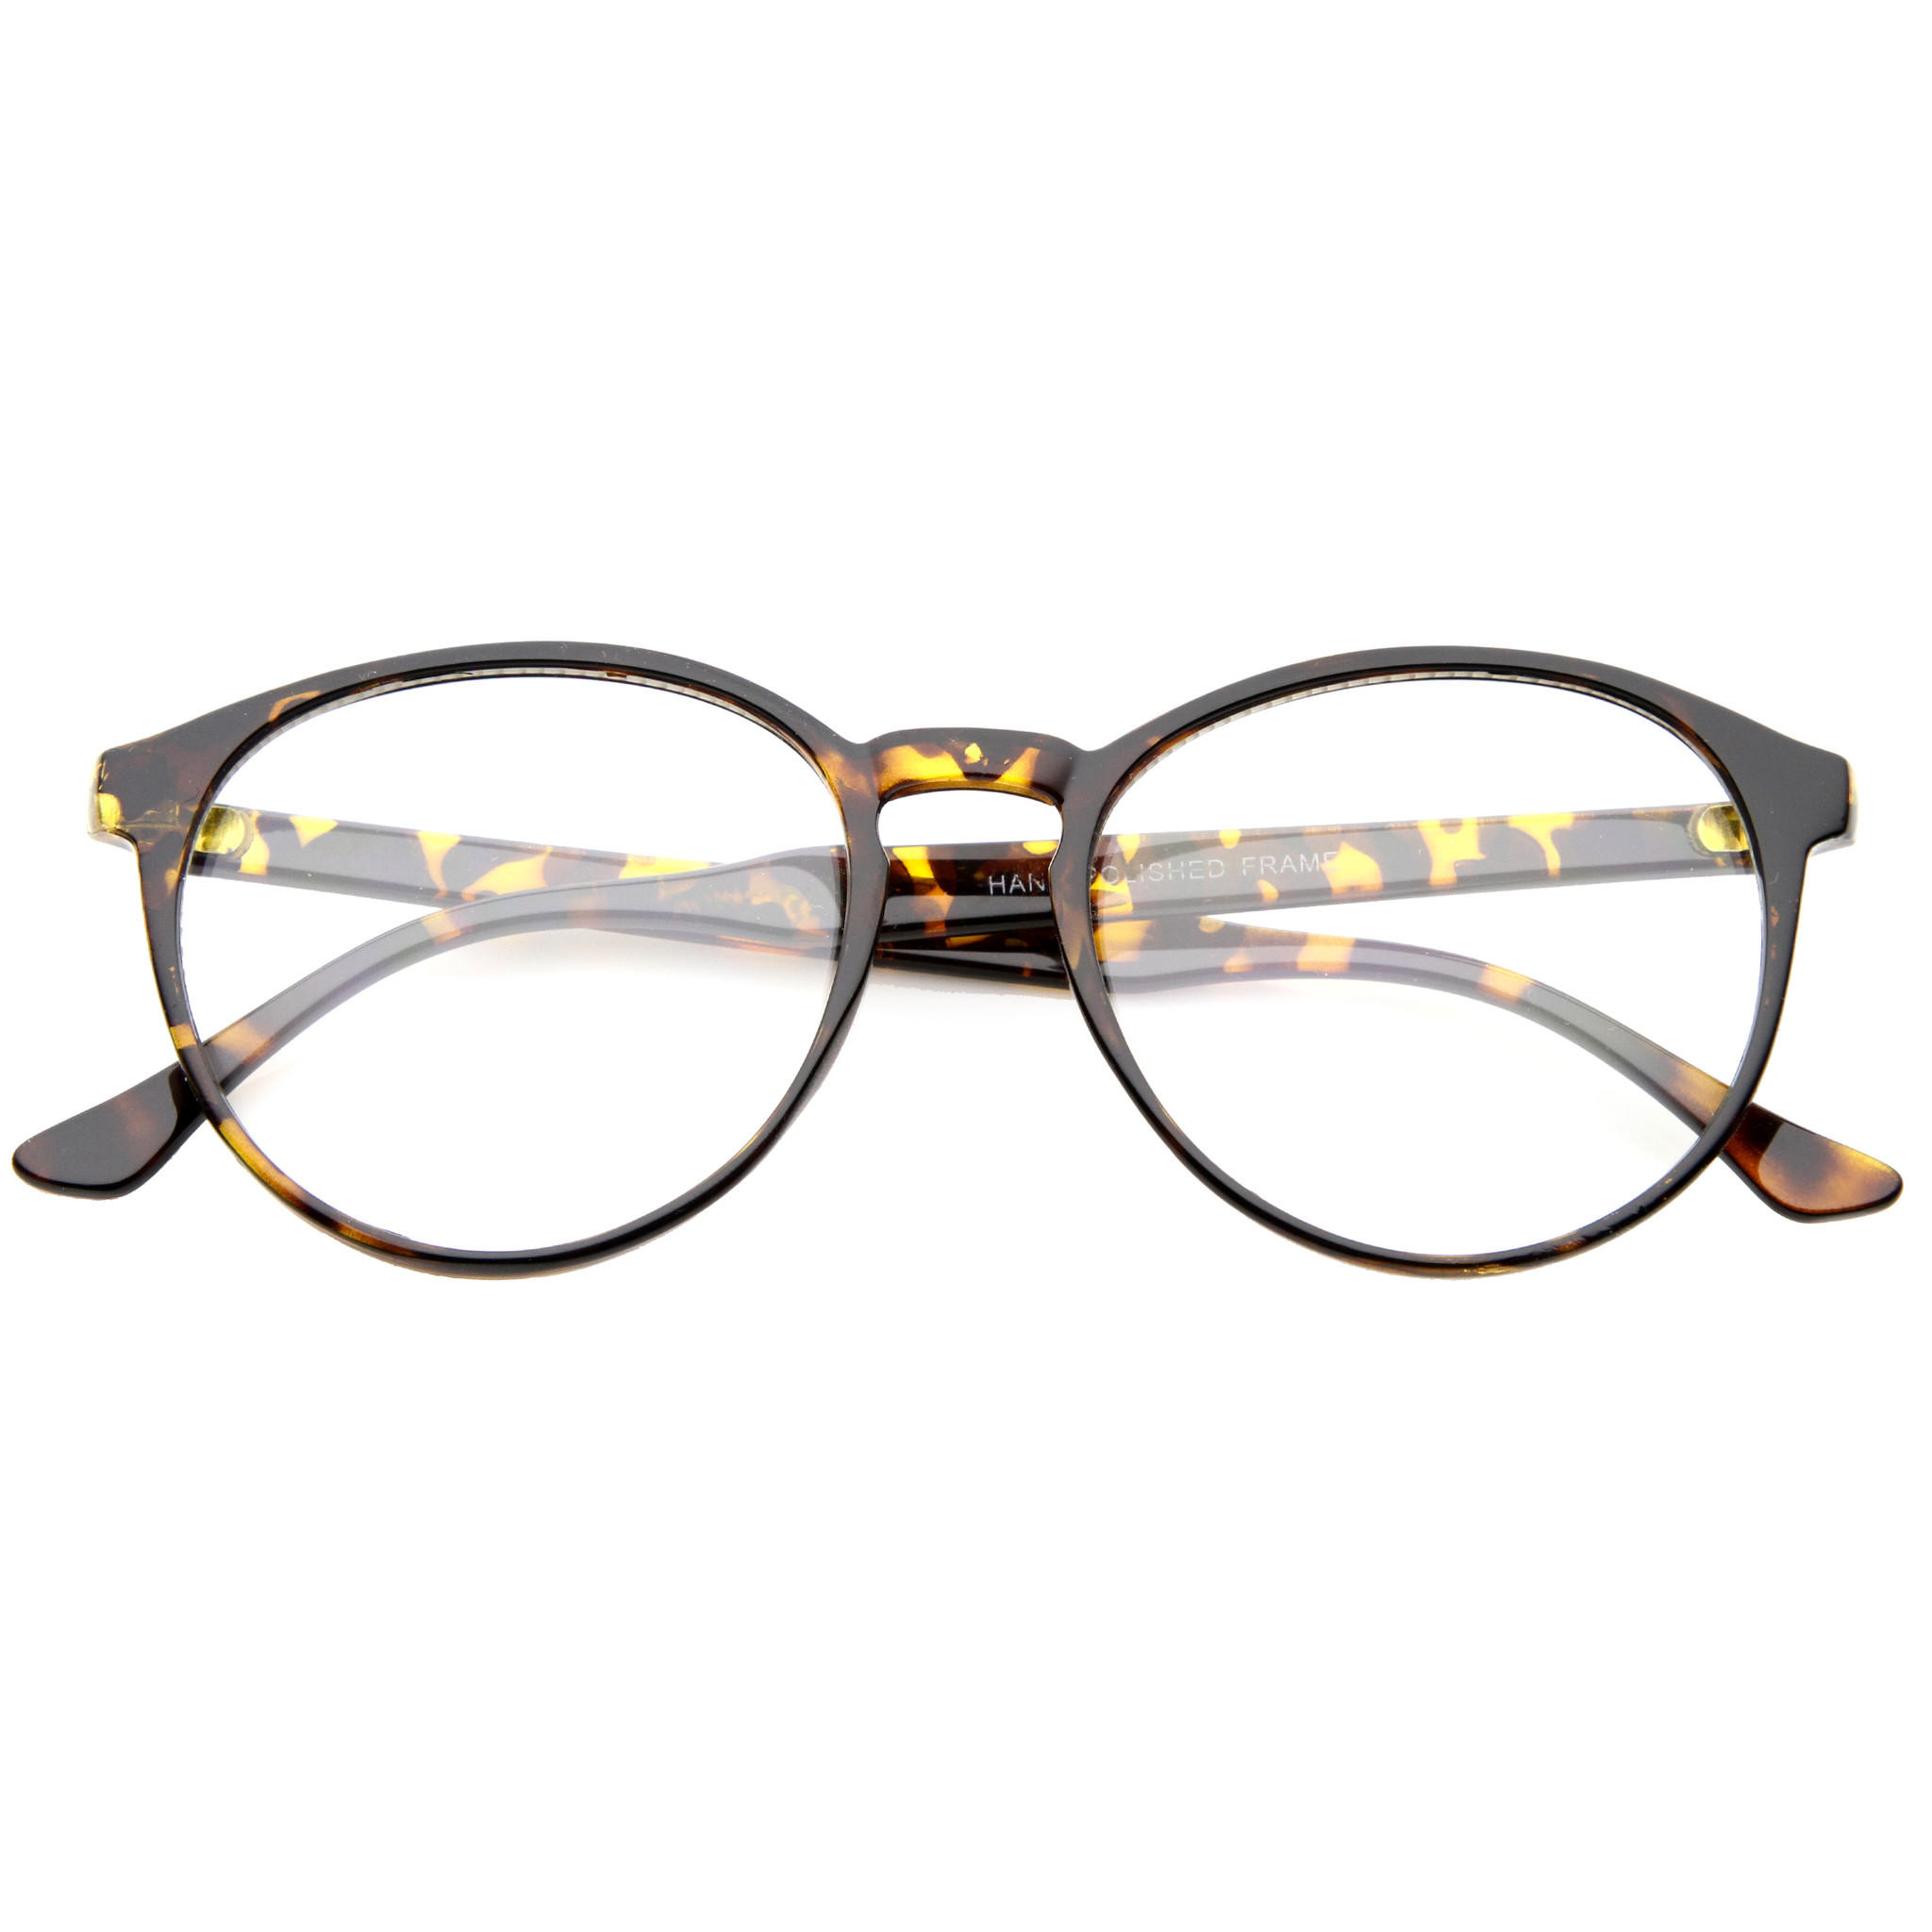 34a22e55a2 Retro Indie Dapper P3 Clear Lens RX from zeroUV